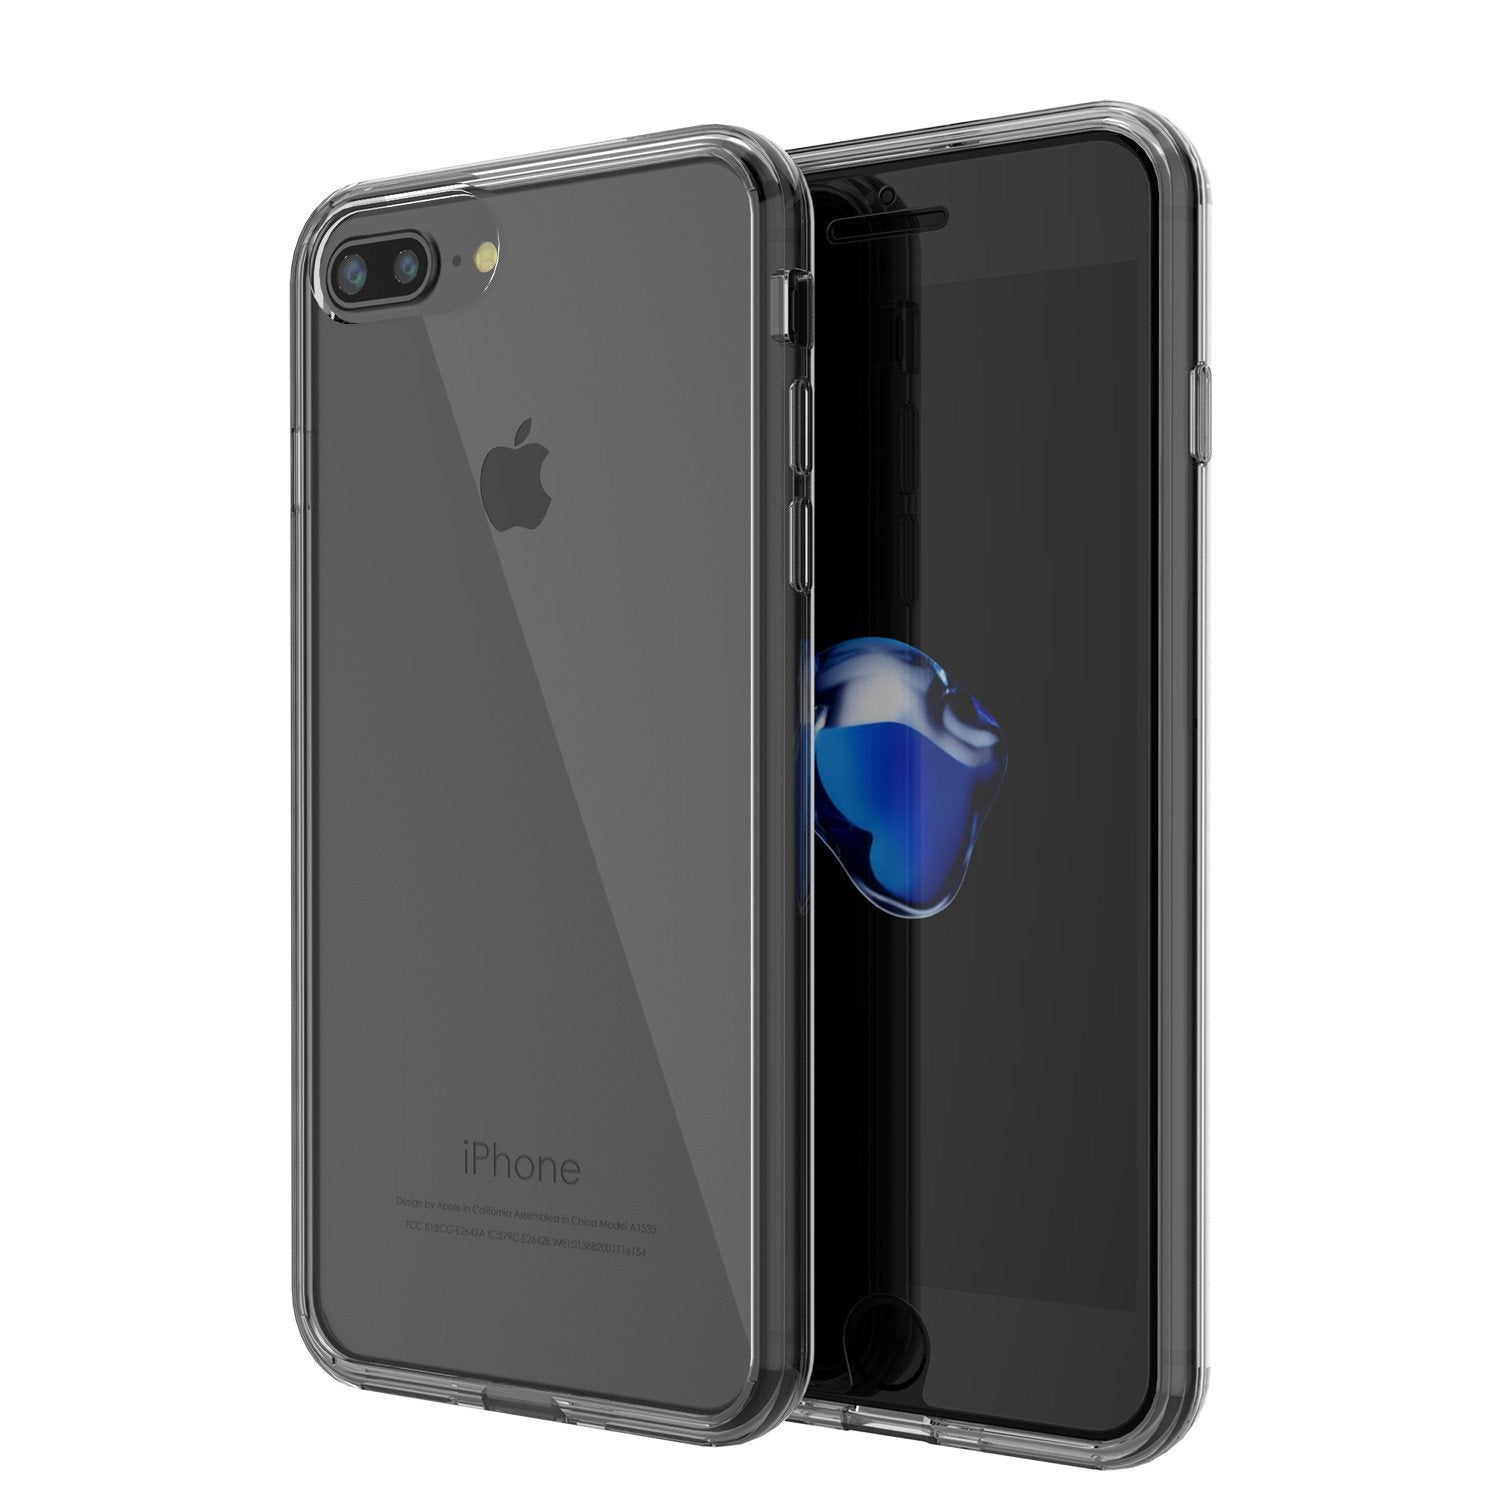 "iPhone SE (4.7"") Case Punkcase® LUCID 2.0 Crystal Black Series w/ PUNK SHIELD Screen Protector 